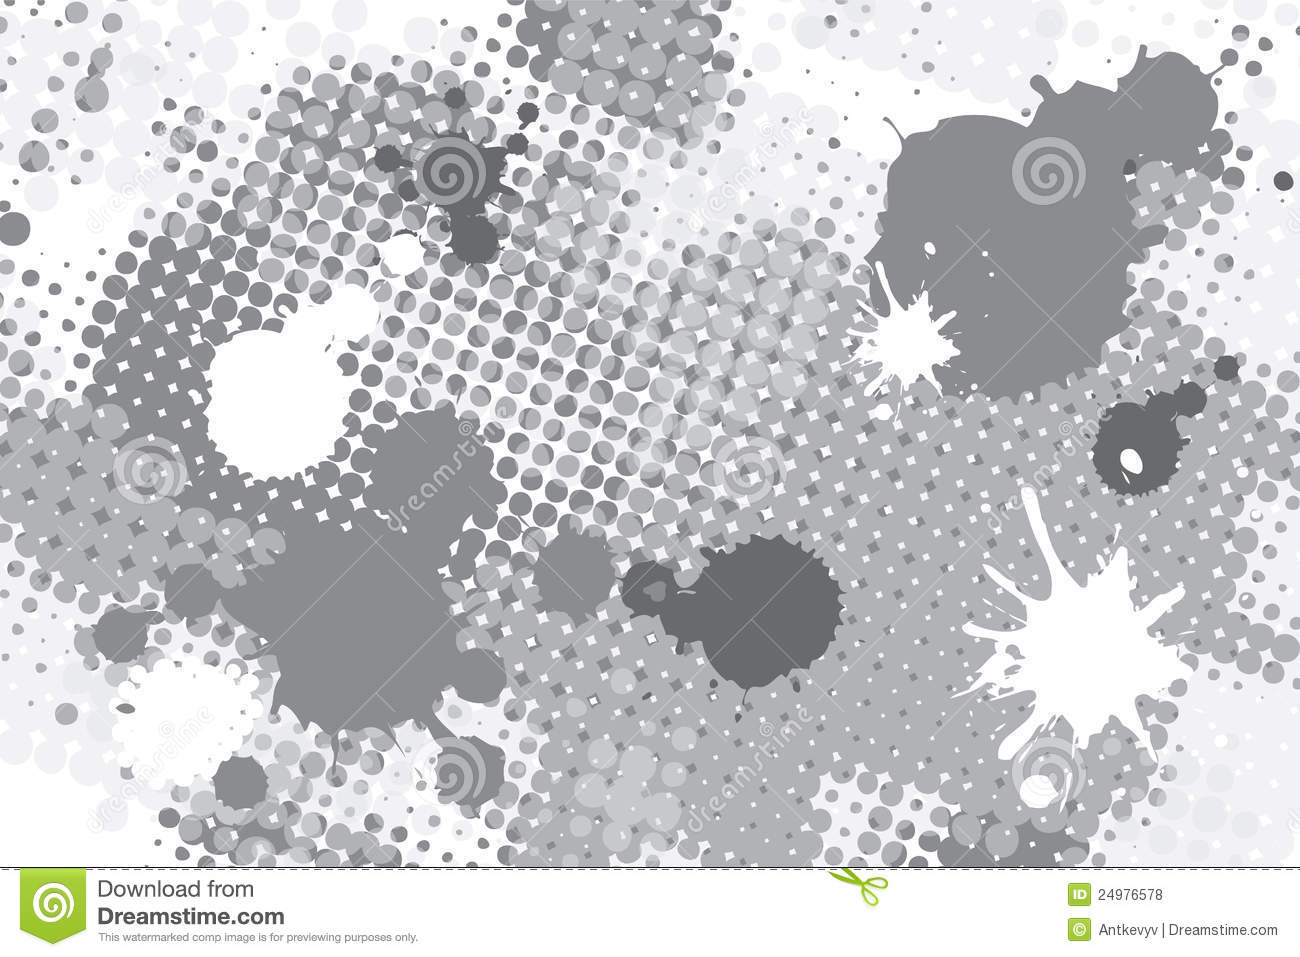 free vector grunge halftone - photo #11